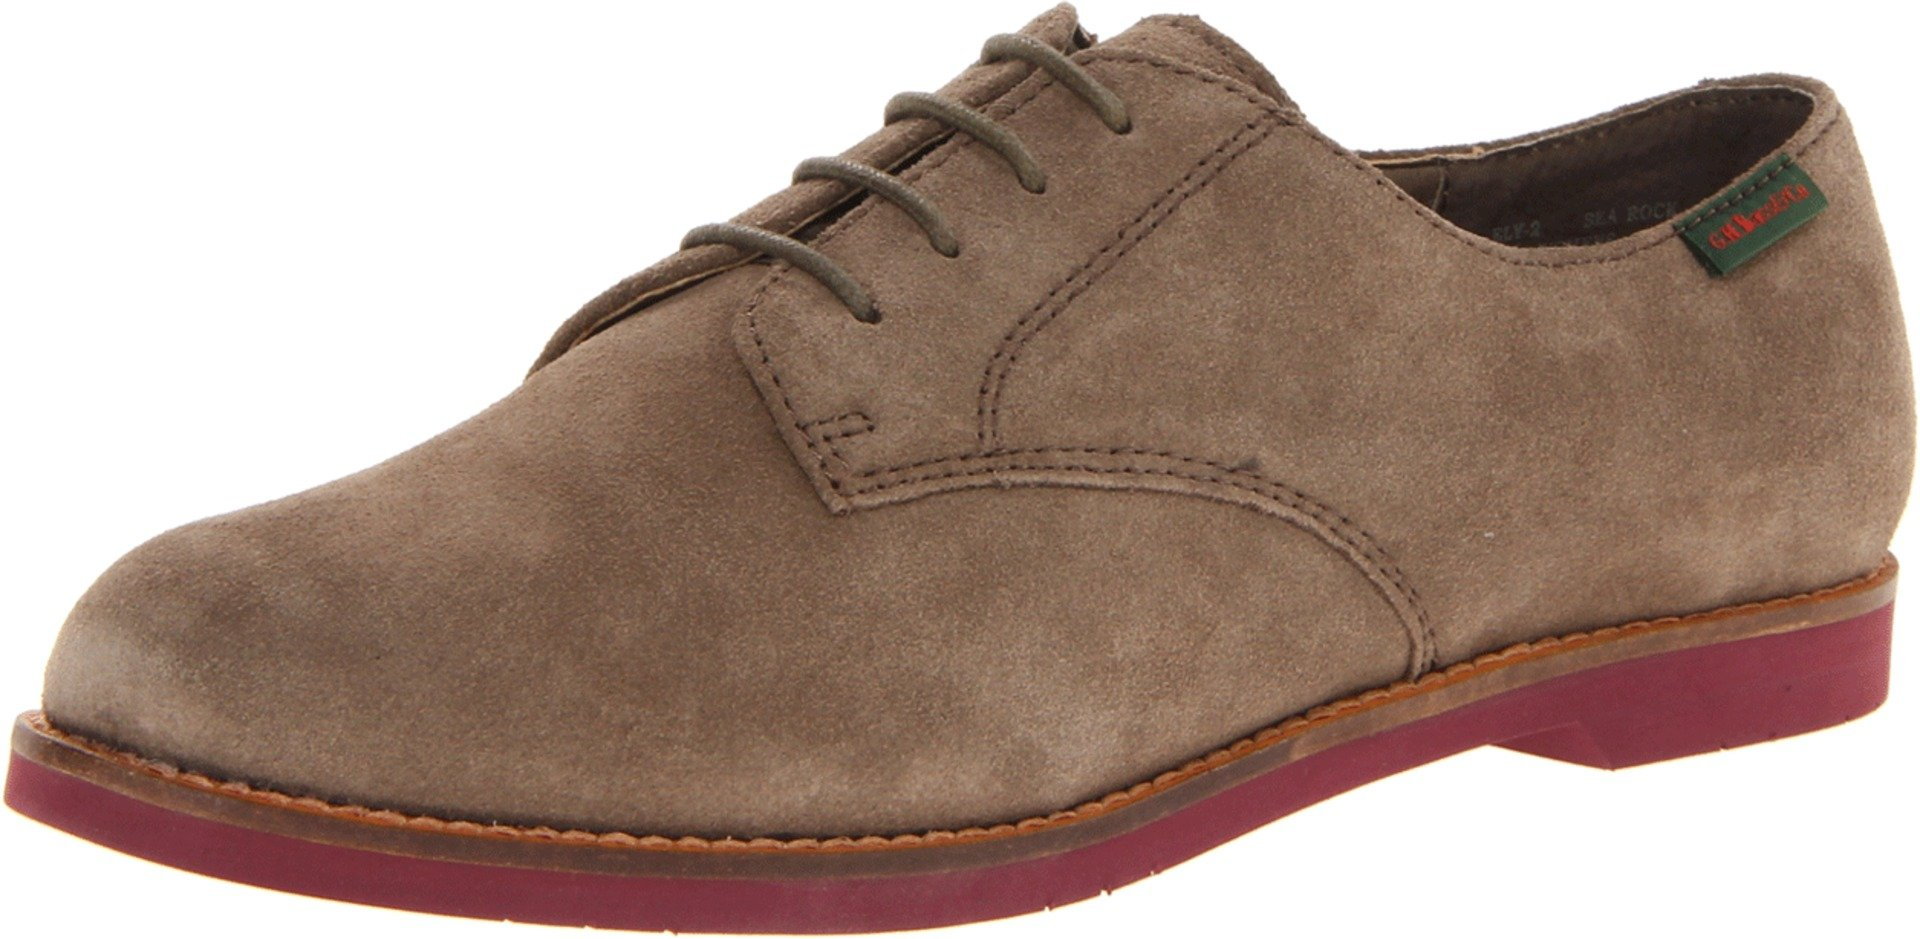 Bass Women's Ely-2 Oxford Shoe